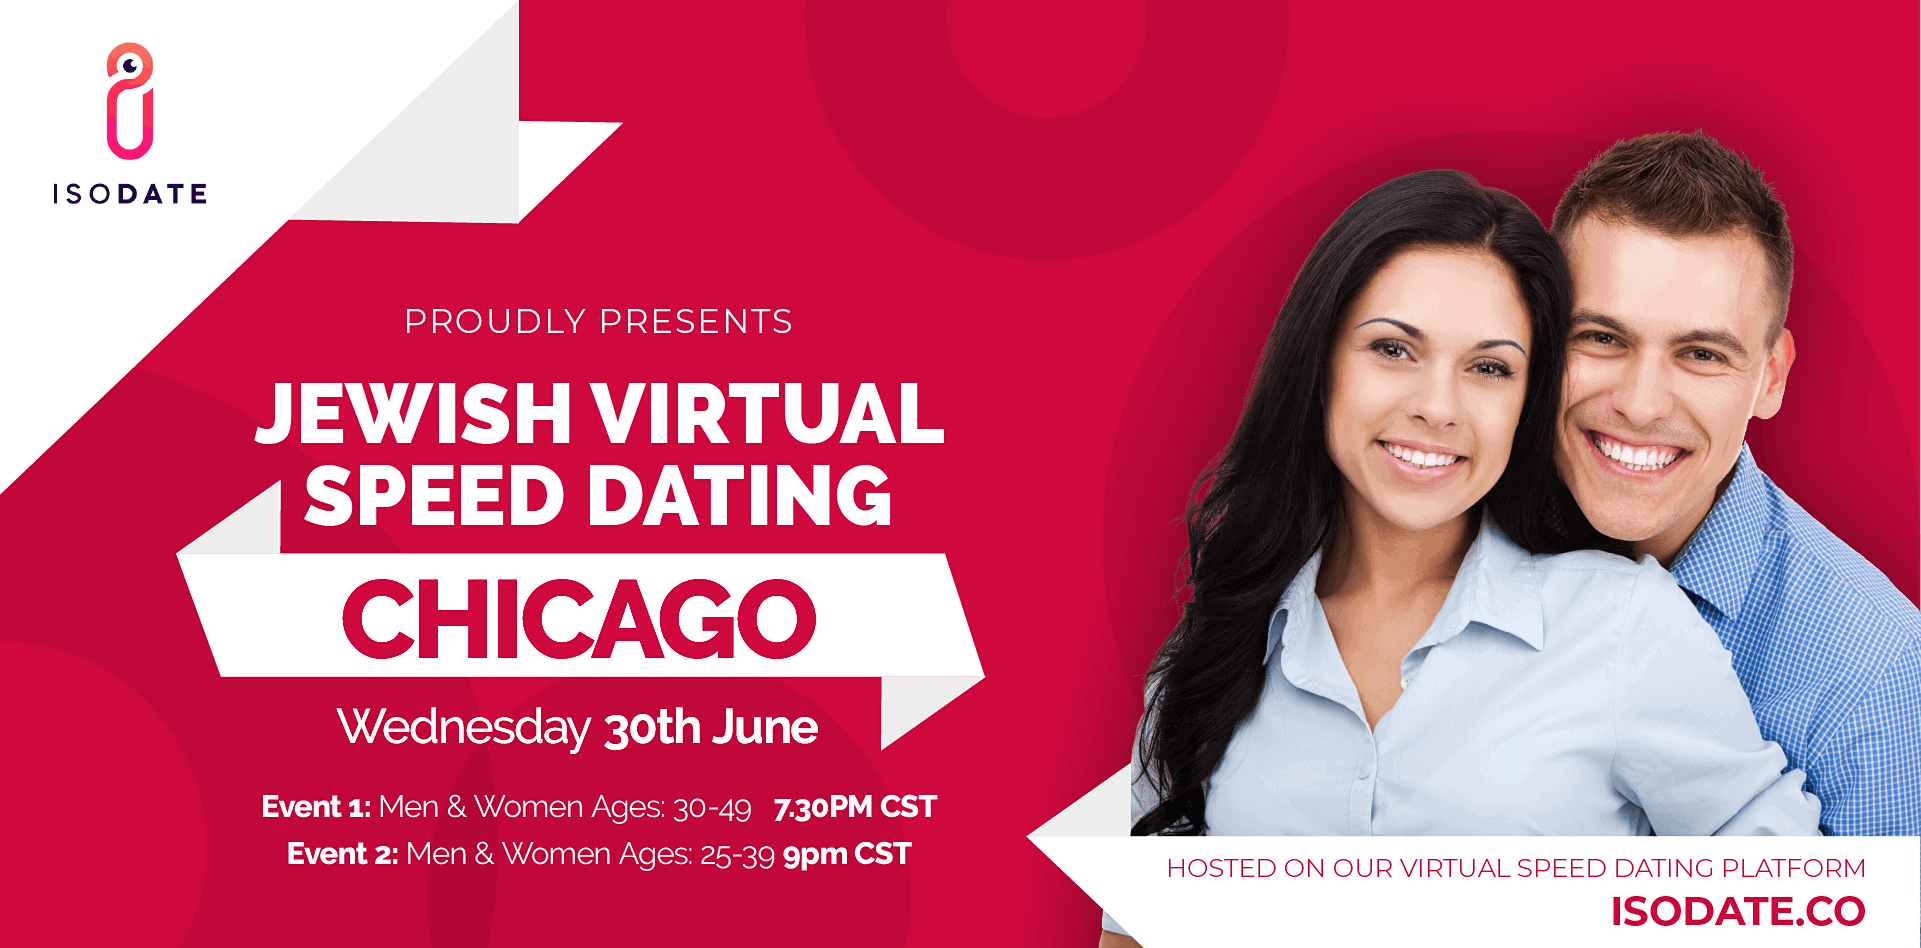 Isodate's Chicago Jewish Virtual Speed Dating